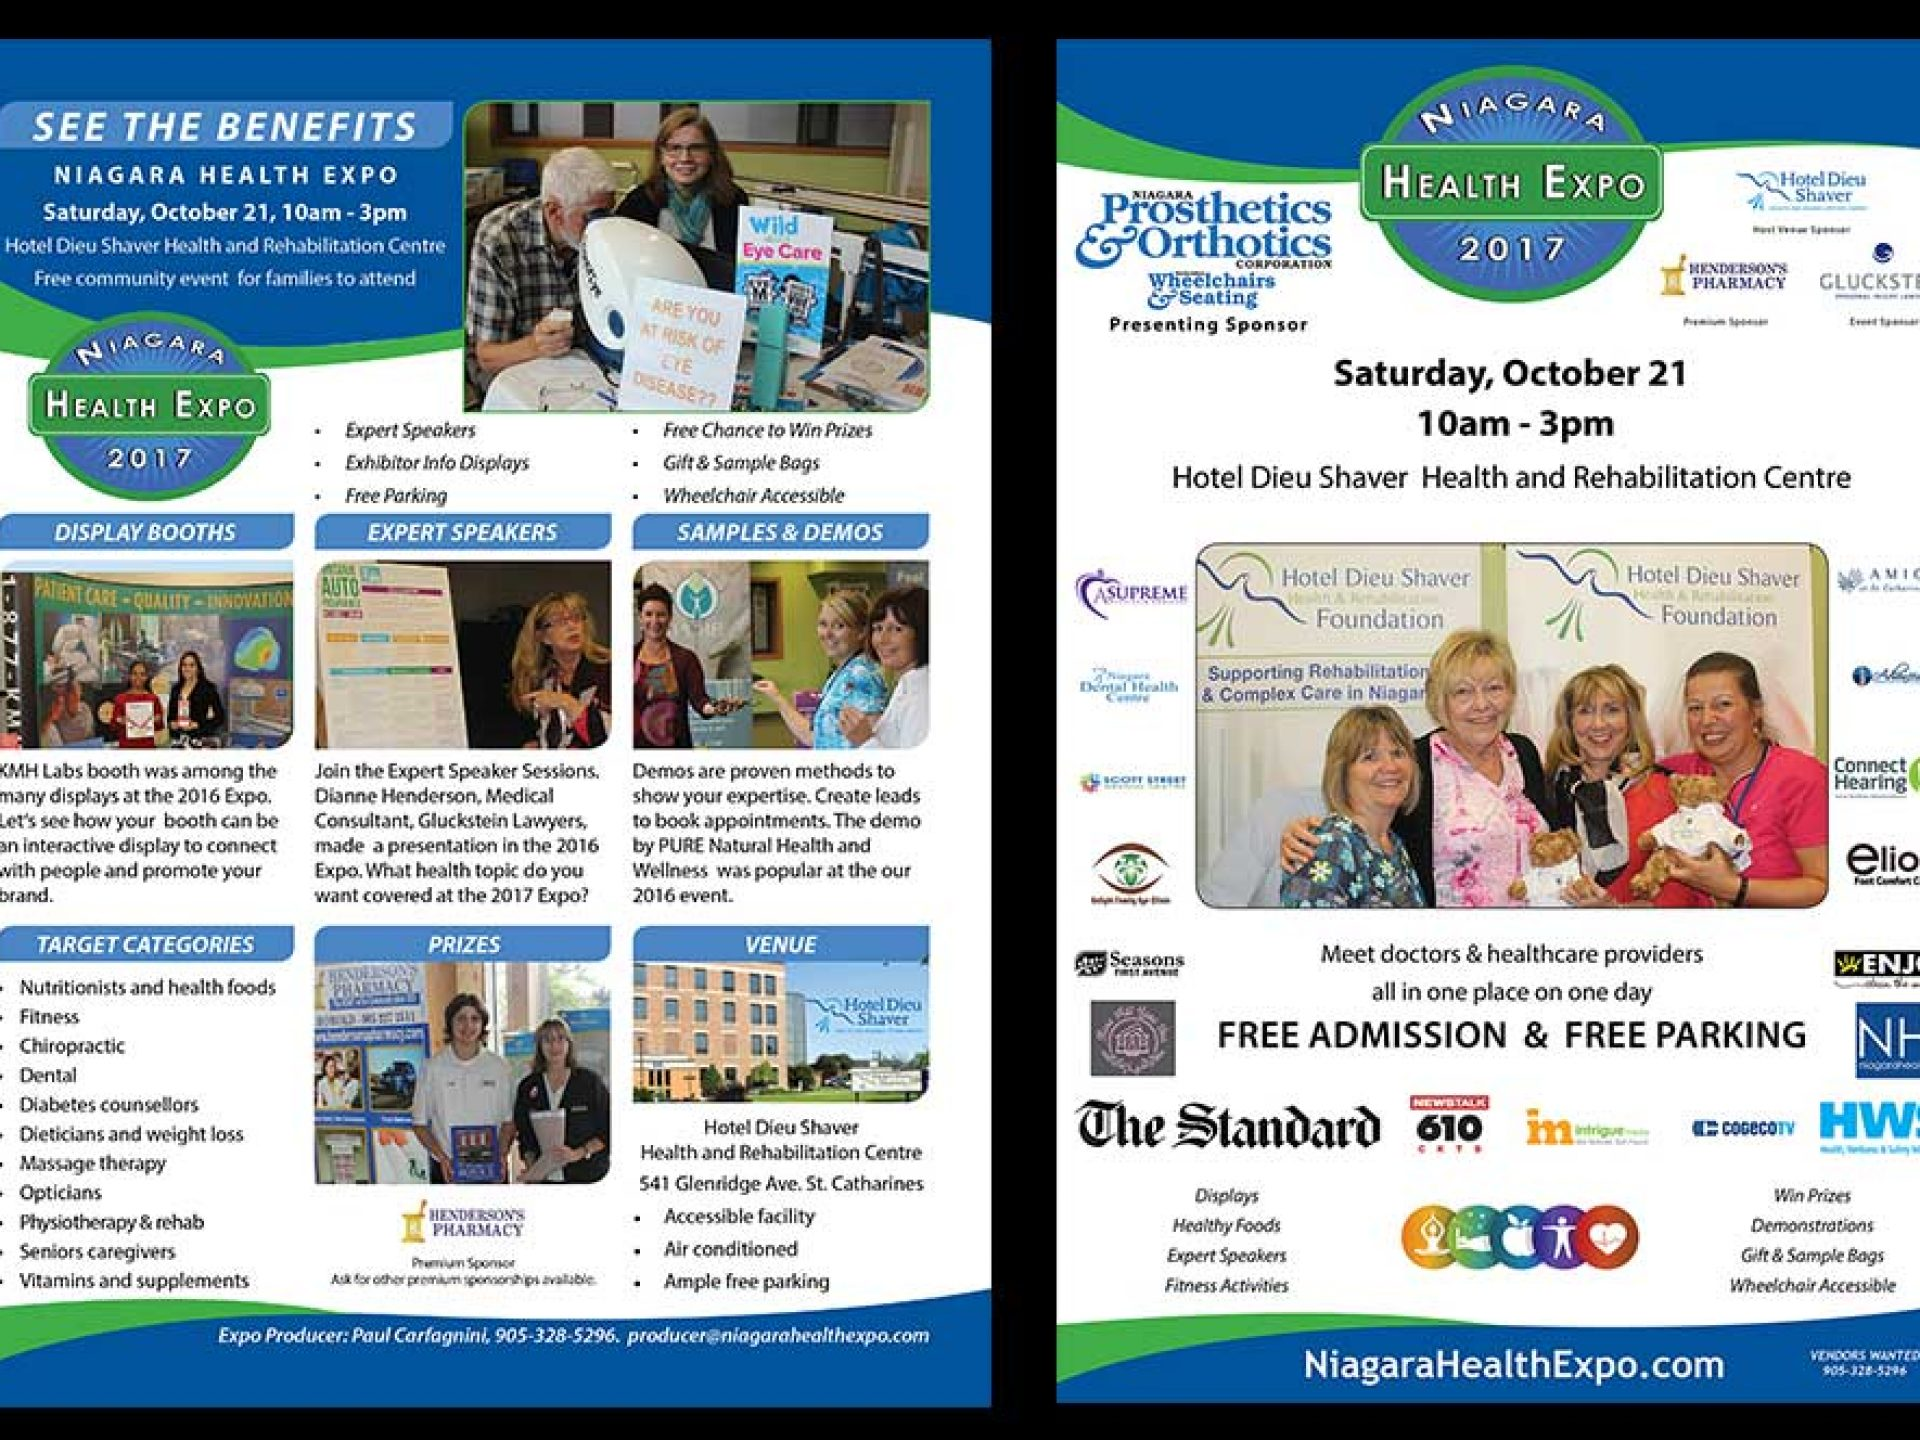 Niagara Health Expo - event sales flyer - 2 sided